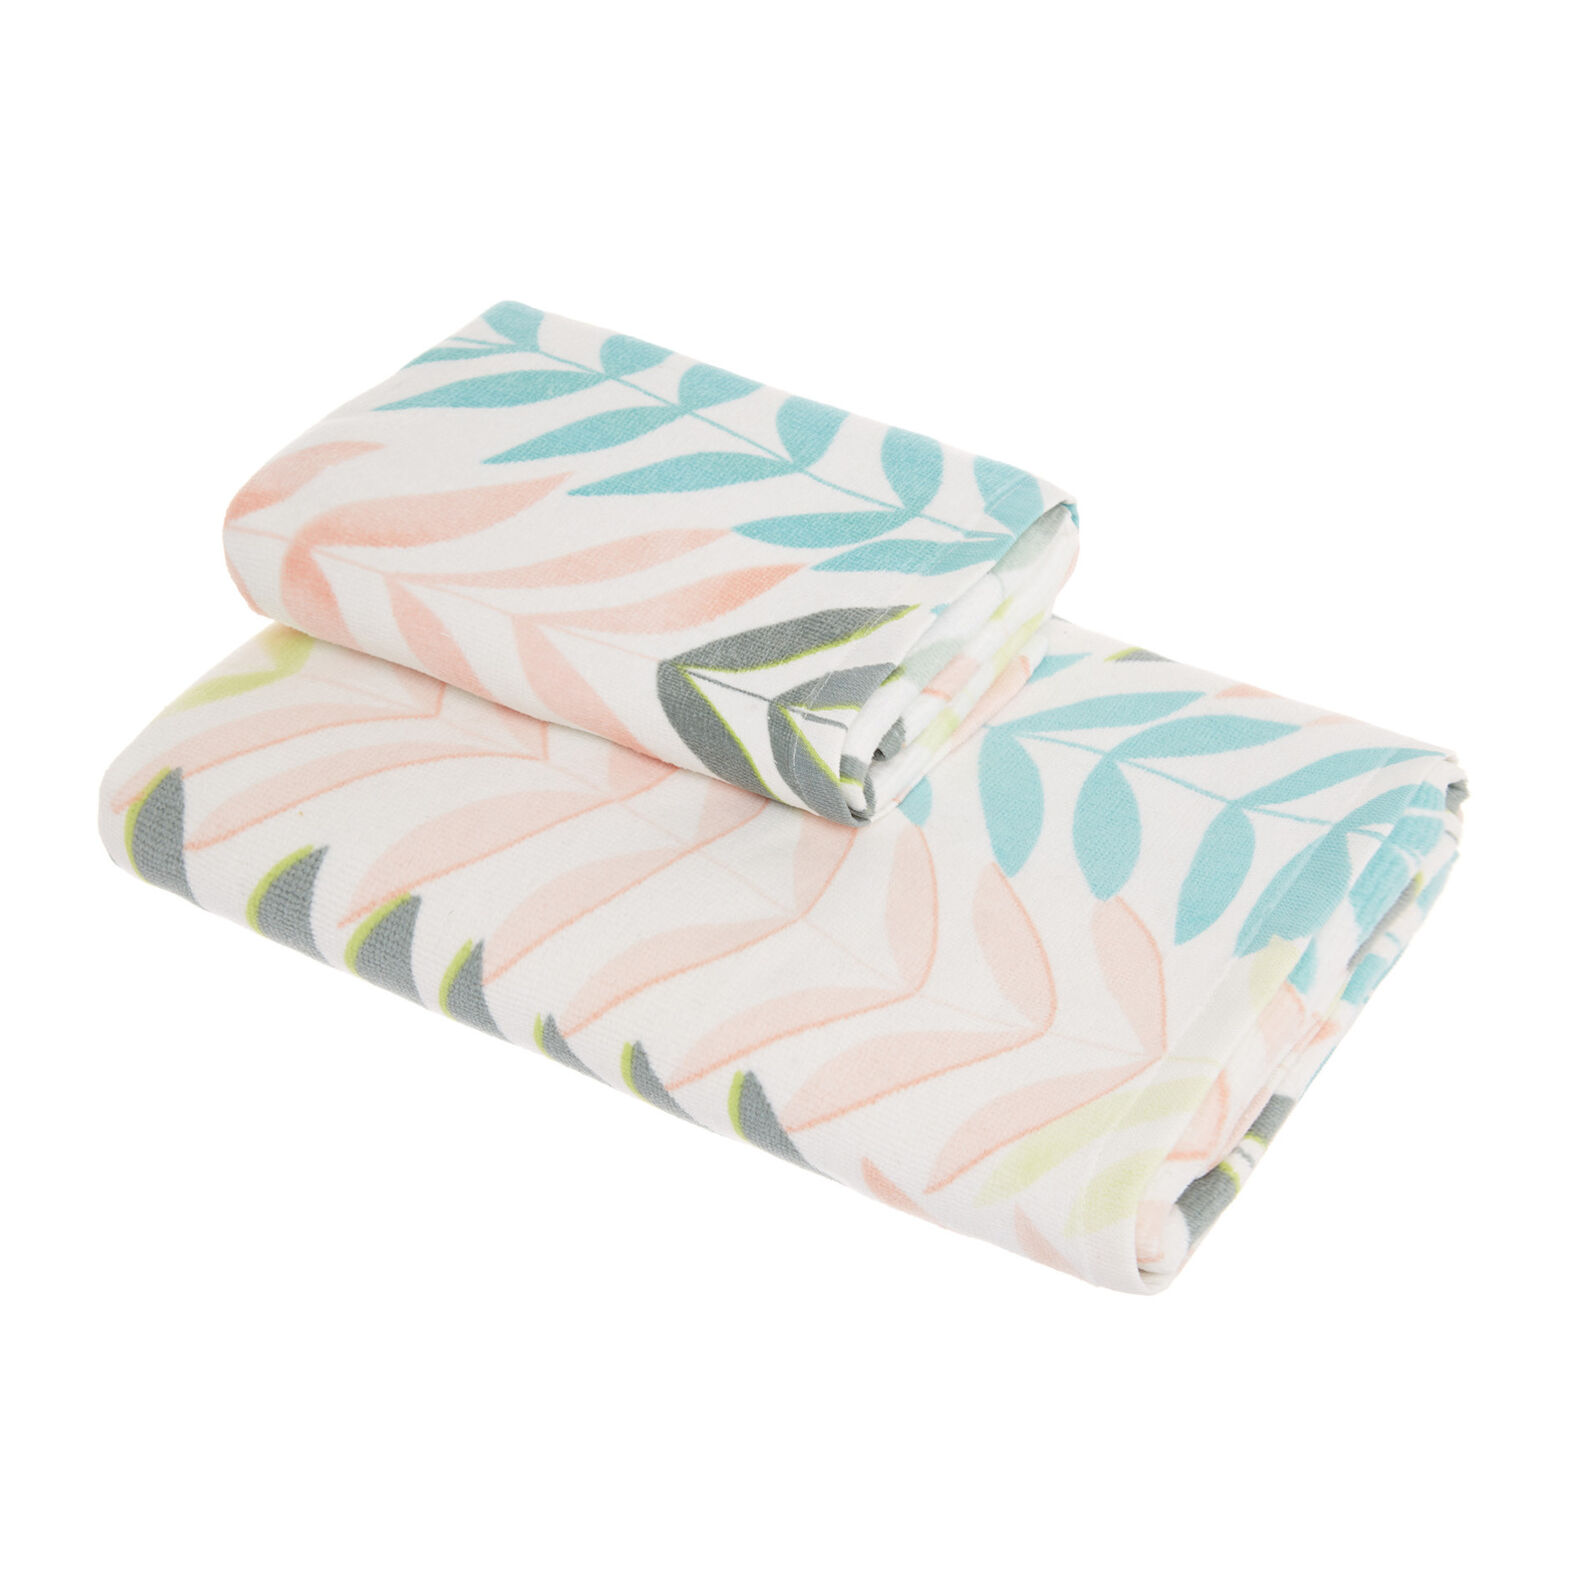 Cotton velour towel with leaf print